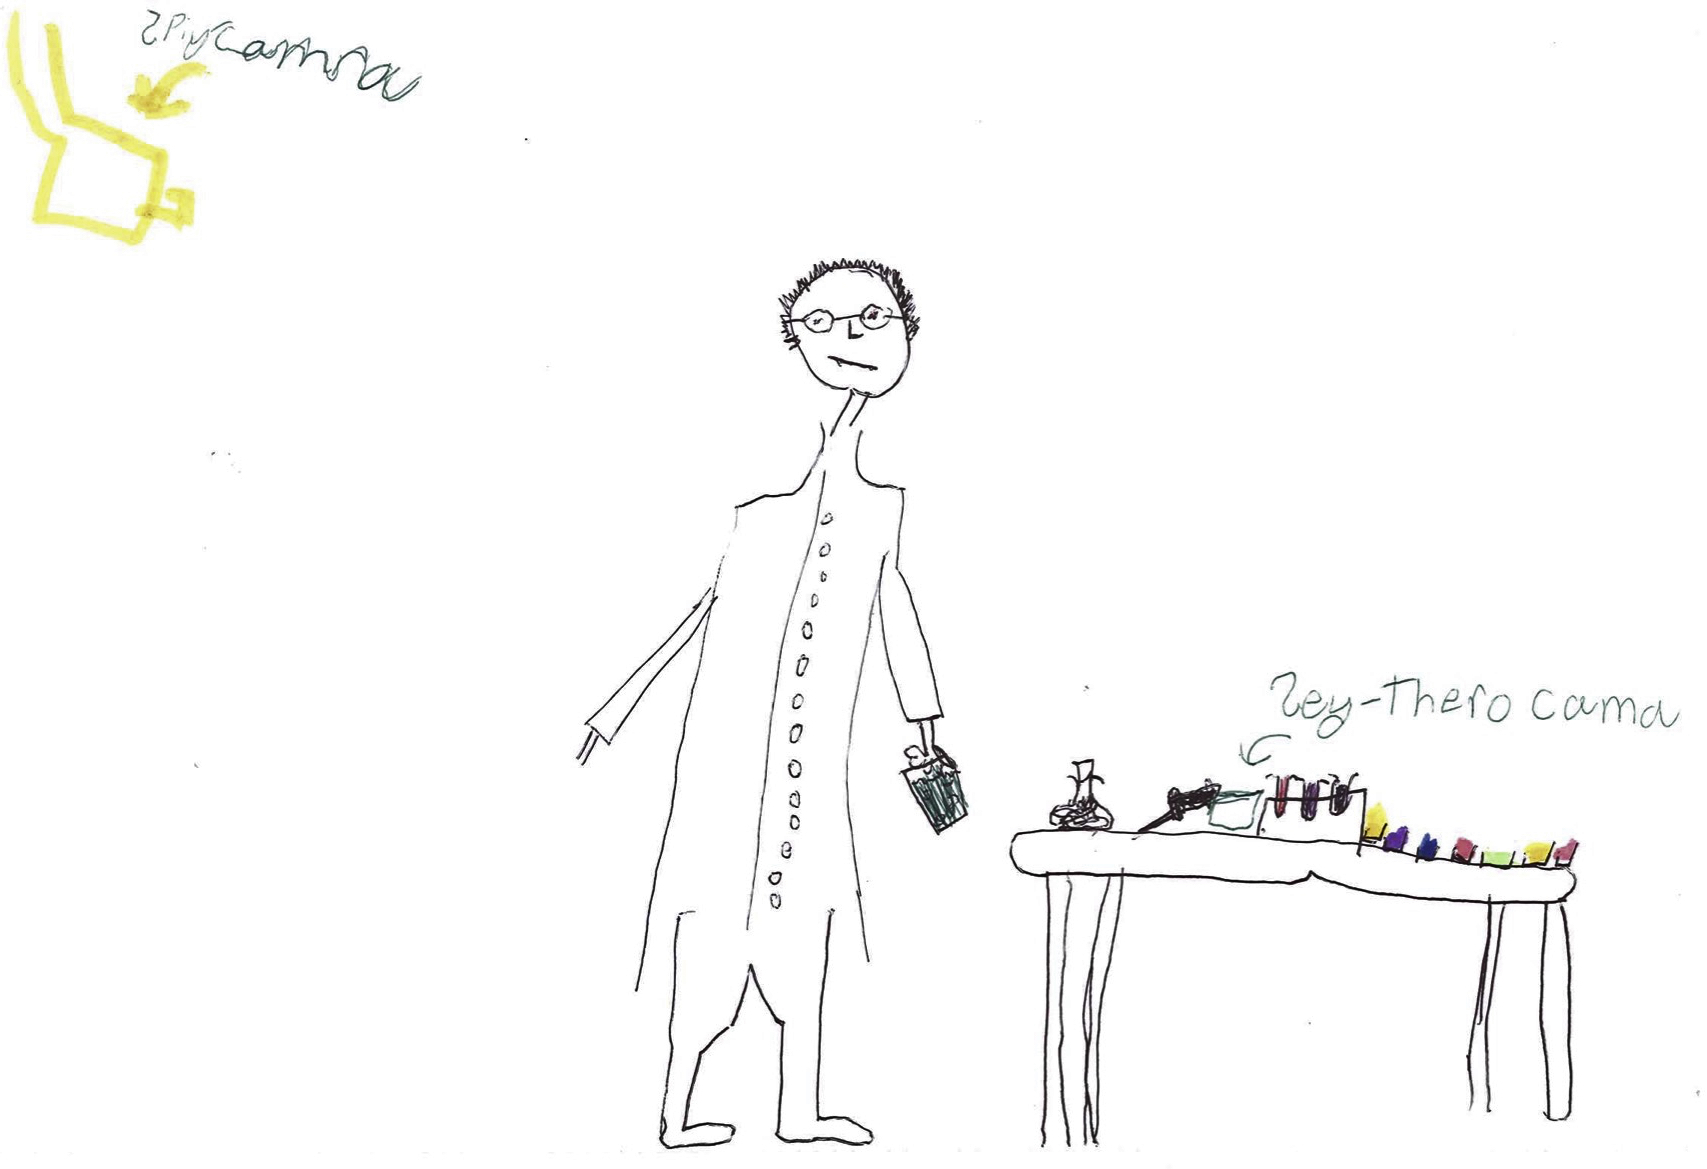 The Draw-A-Scientist Test